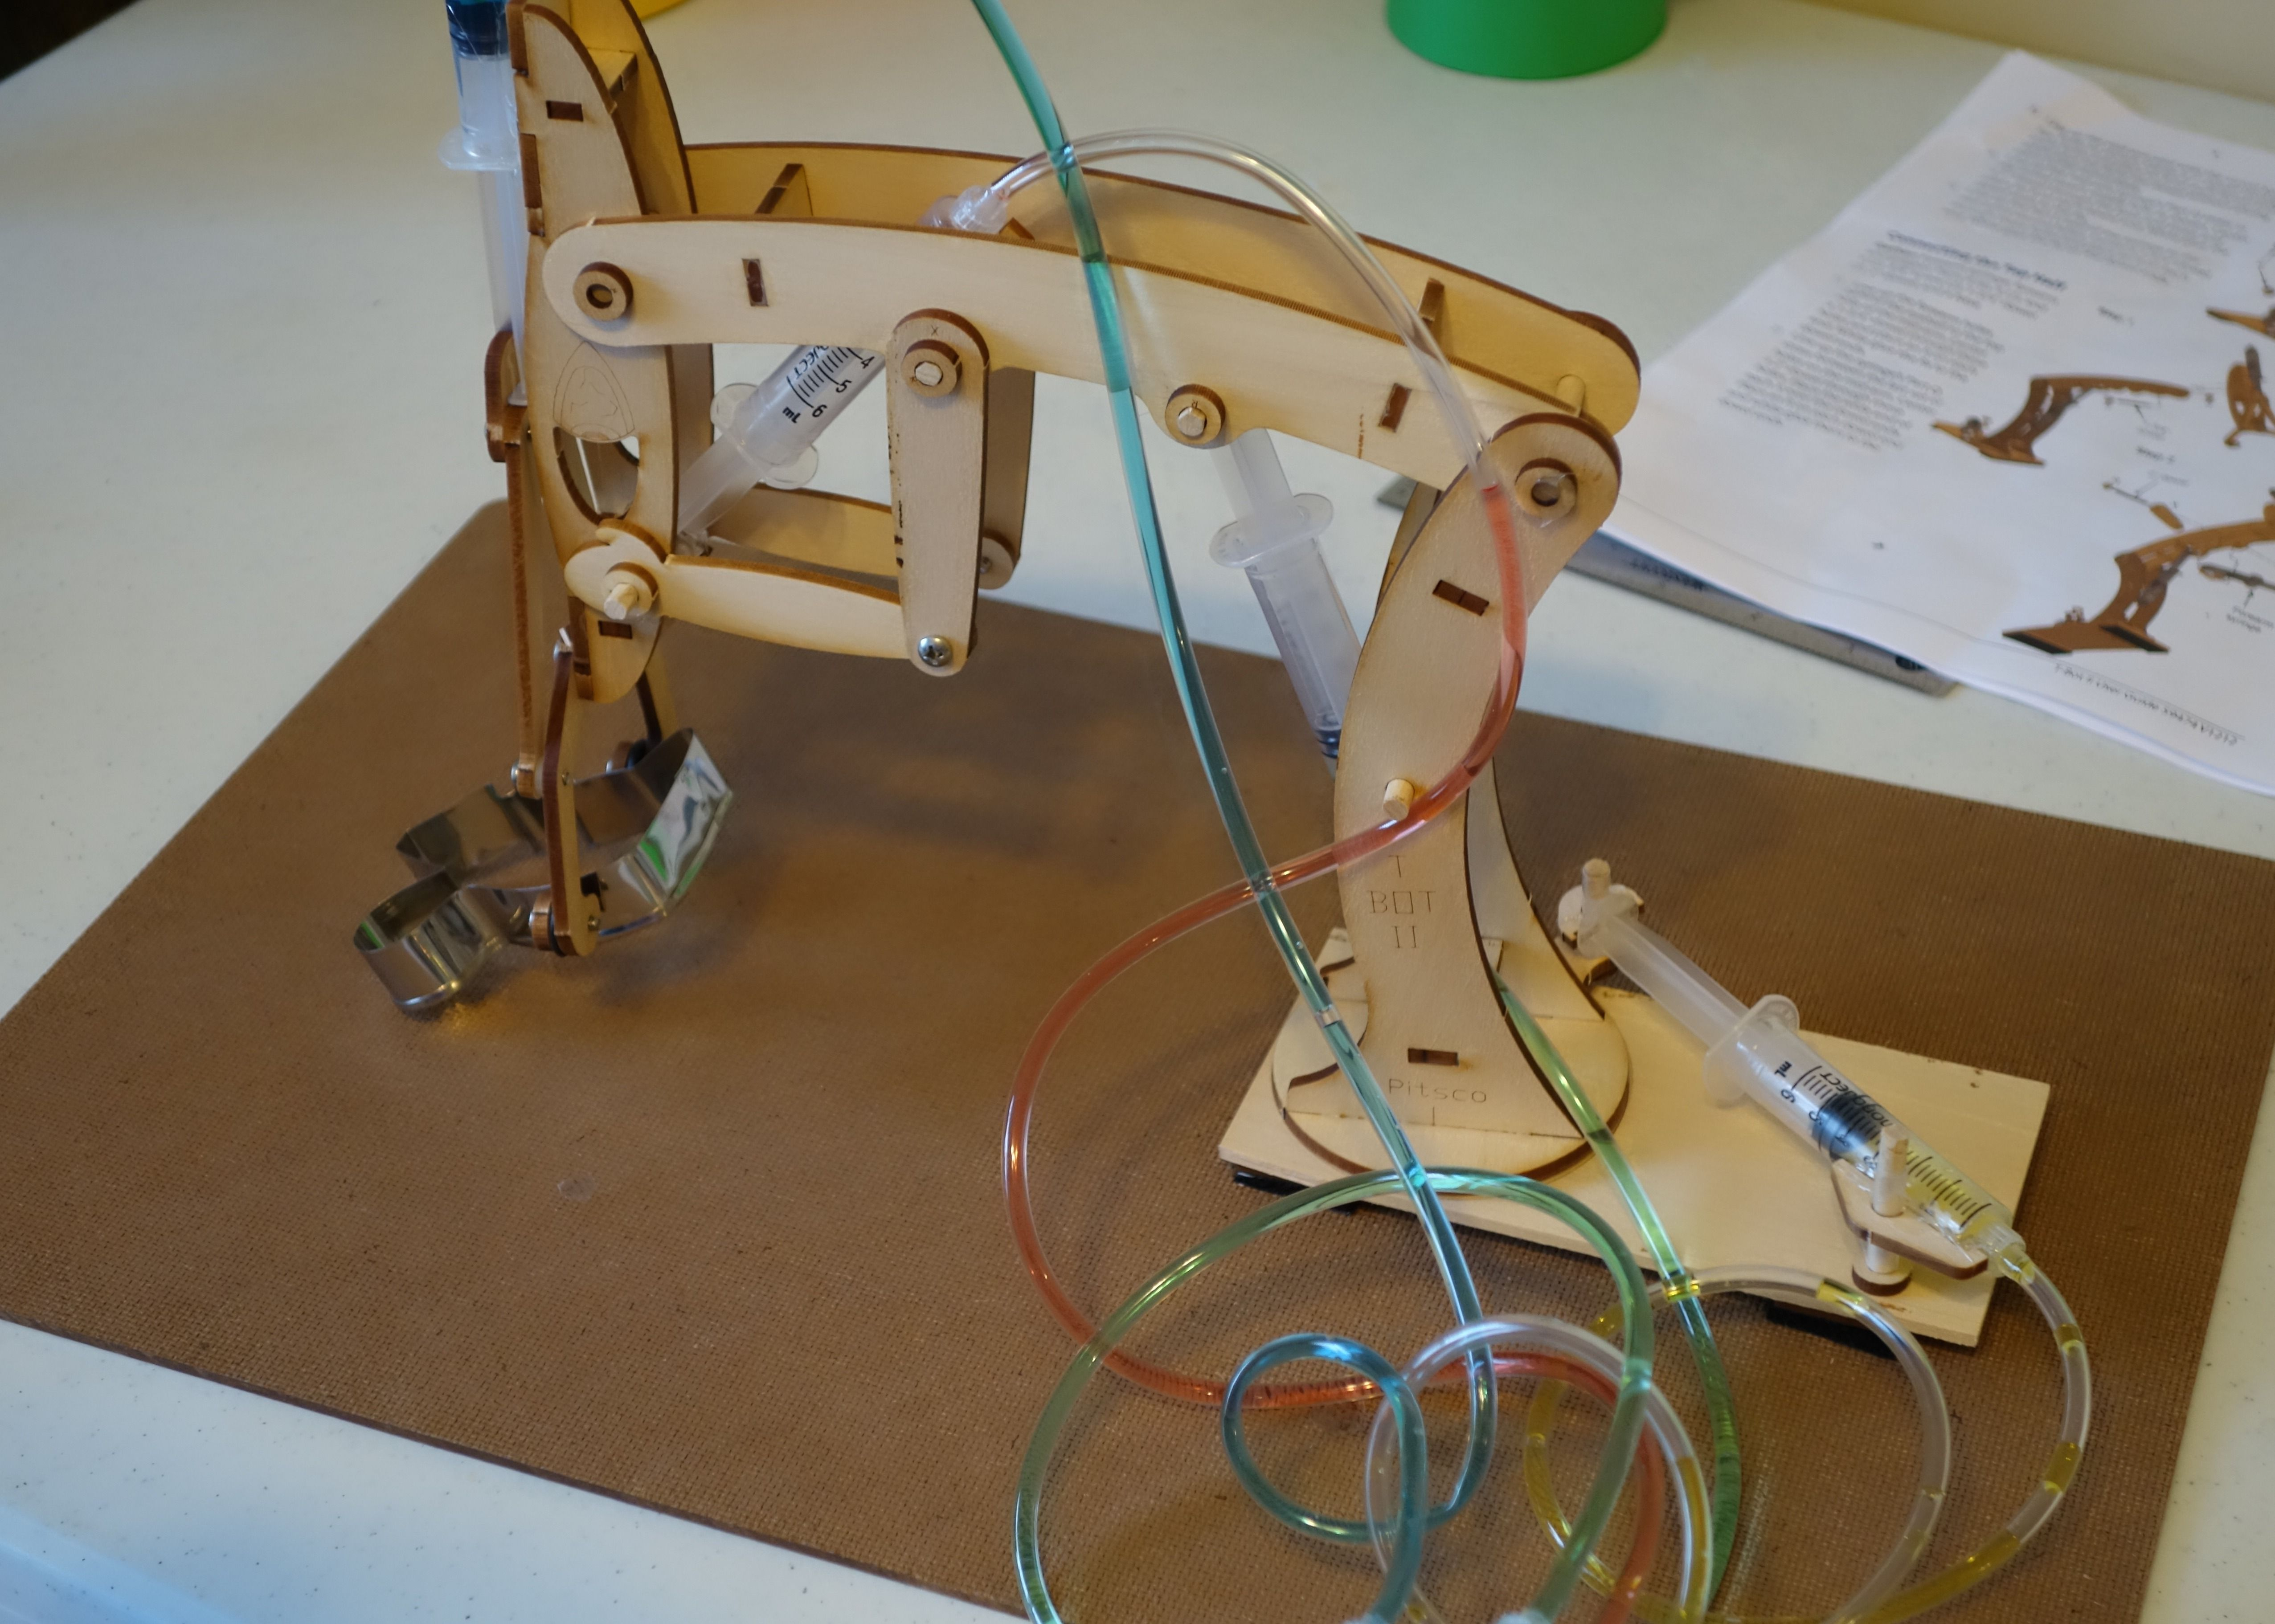 Excavator Hydraulic Arm Project : Hydraulic arm kit science at home pinterest robótica